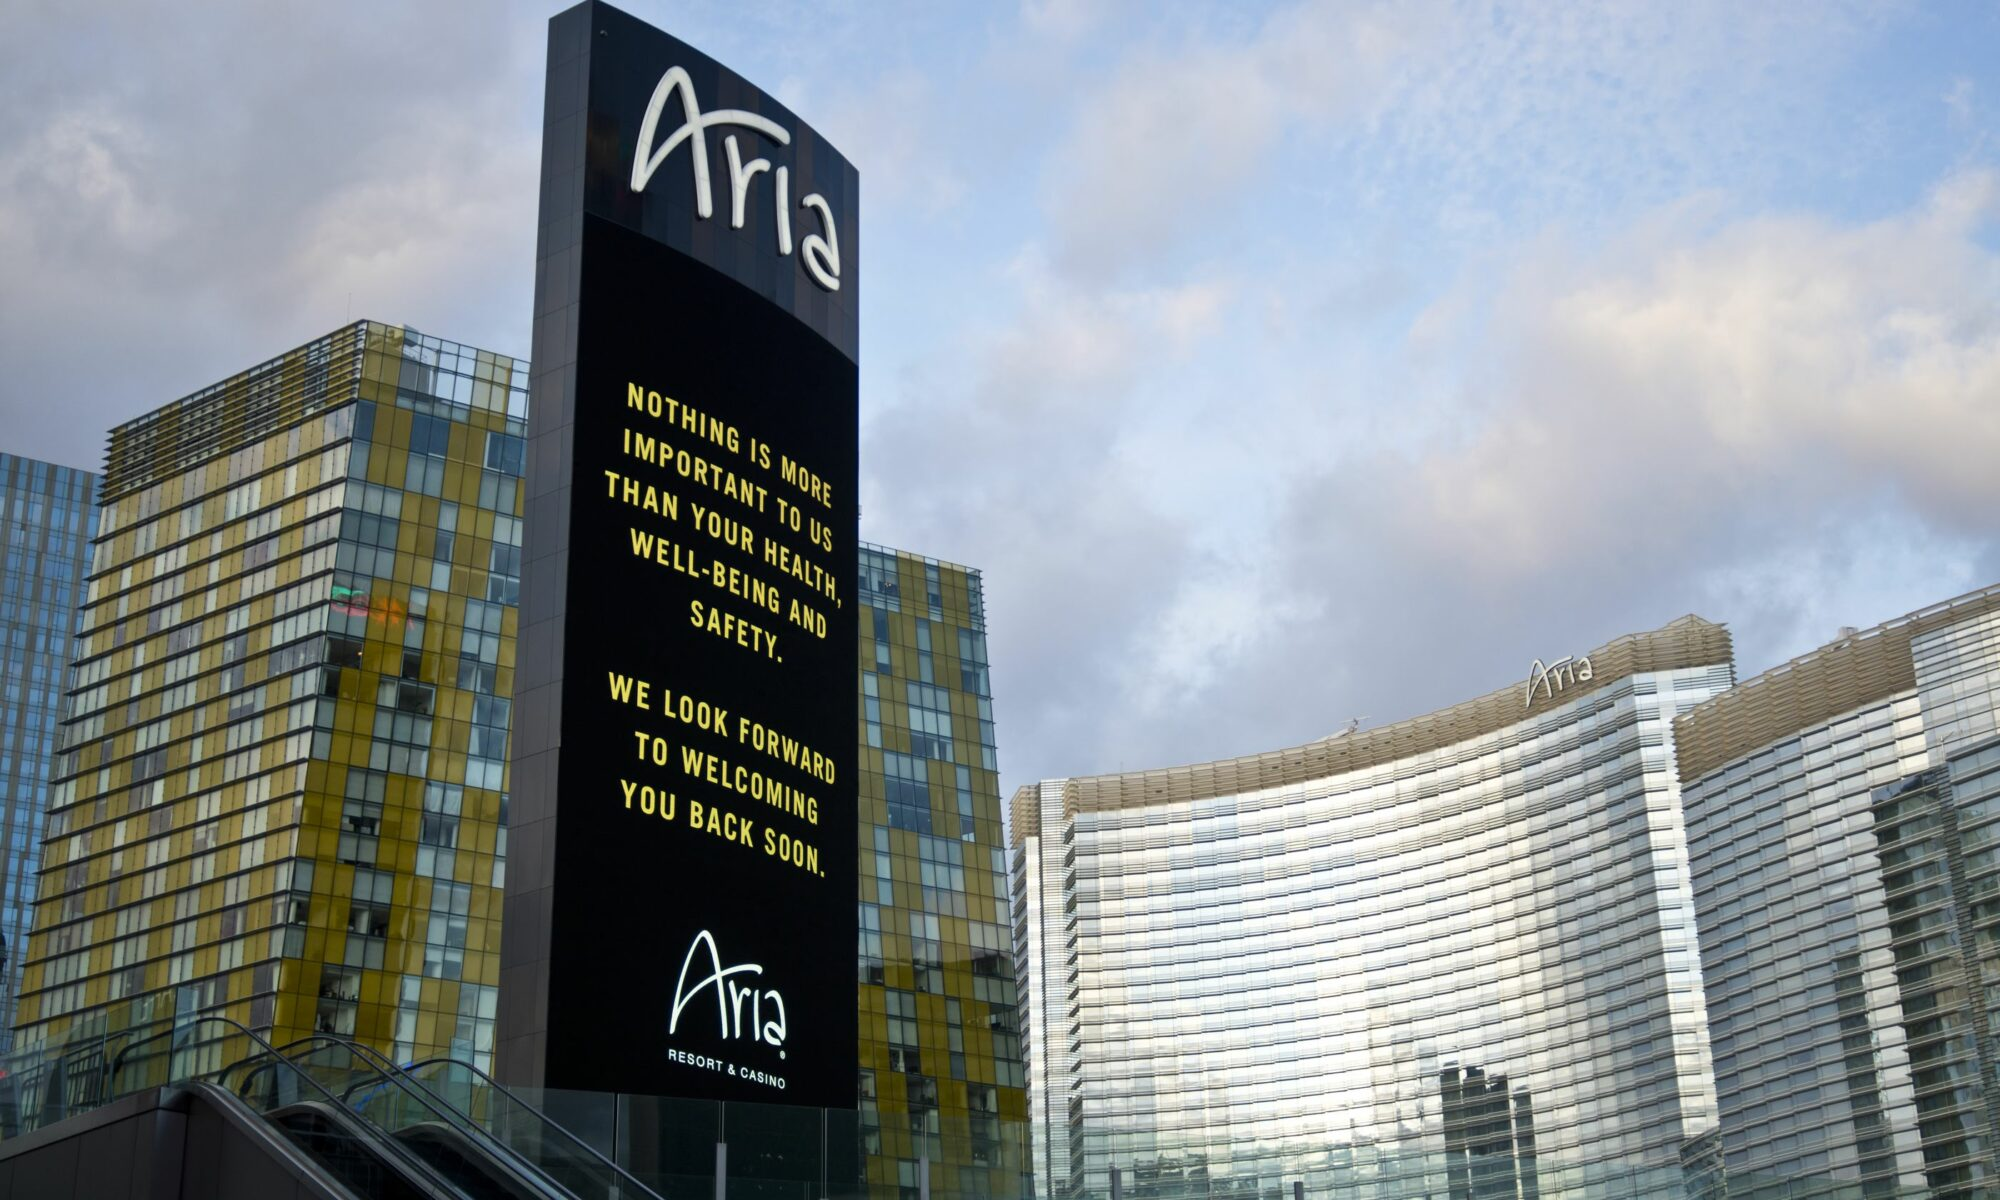 Aria sign with message of noting is more important to us than your health, well-being and safety. We look forward to welcoming you back soon.